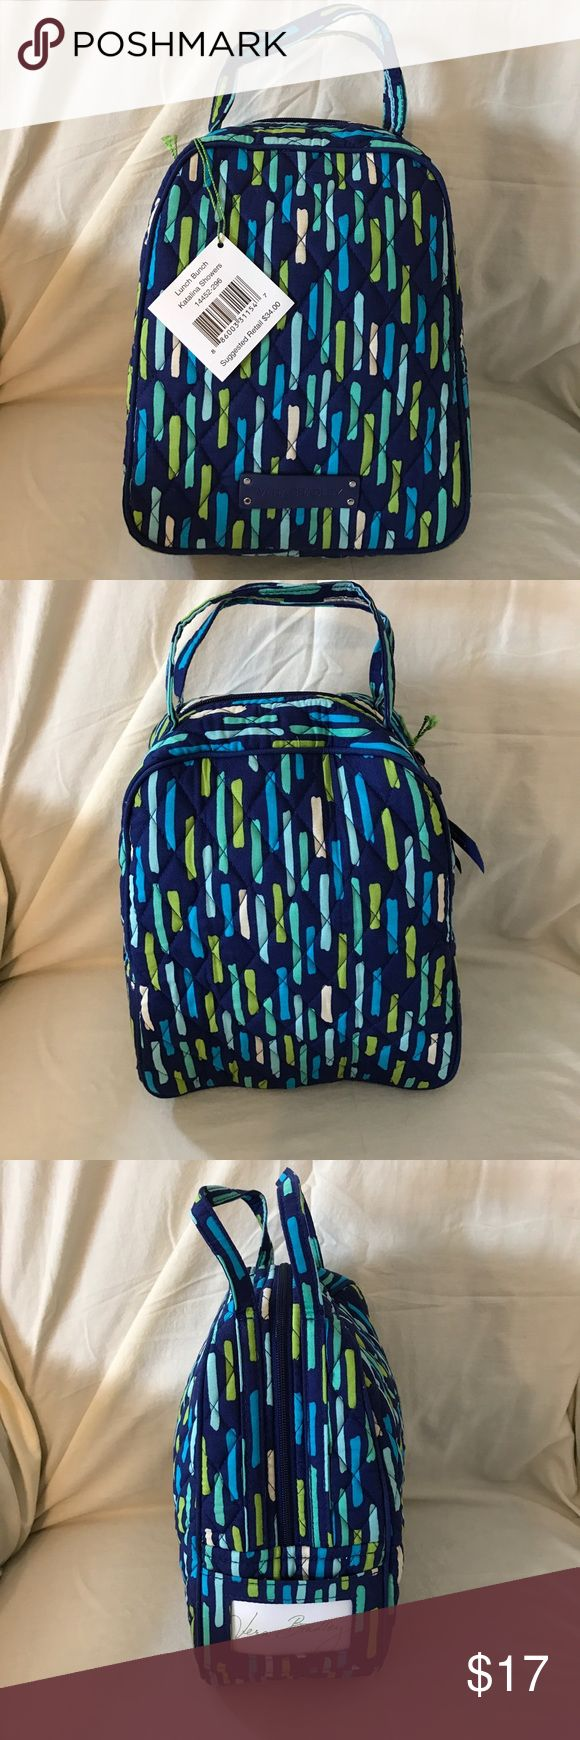 Vera Bradley Lunch Bunch Thermal Lunch Bag Authentic Vera Bradley lunch bag in the beautiful Katalina Showers pattern. This lunch bag is lined and thermal to keep your lunch cold. Vera Bradley Bags Totes